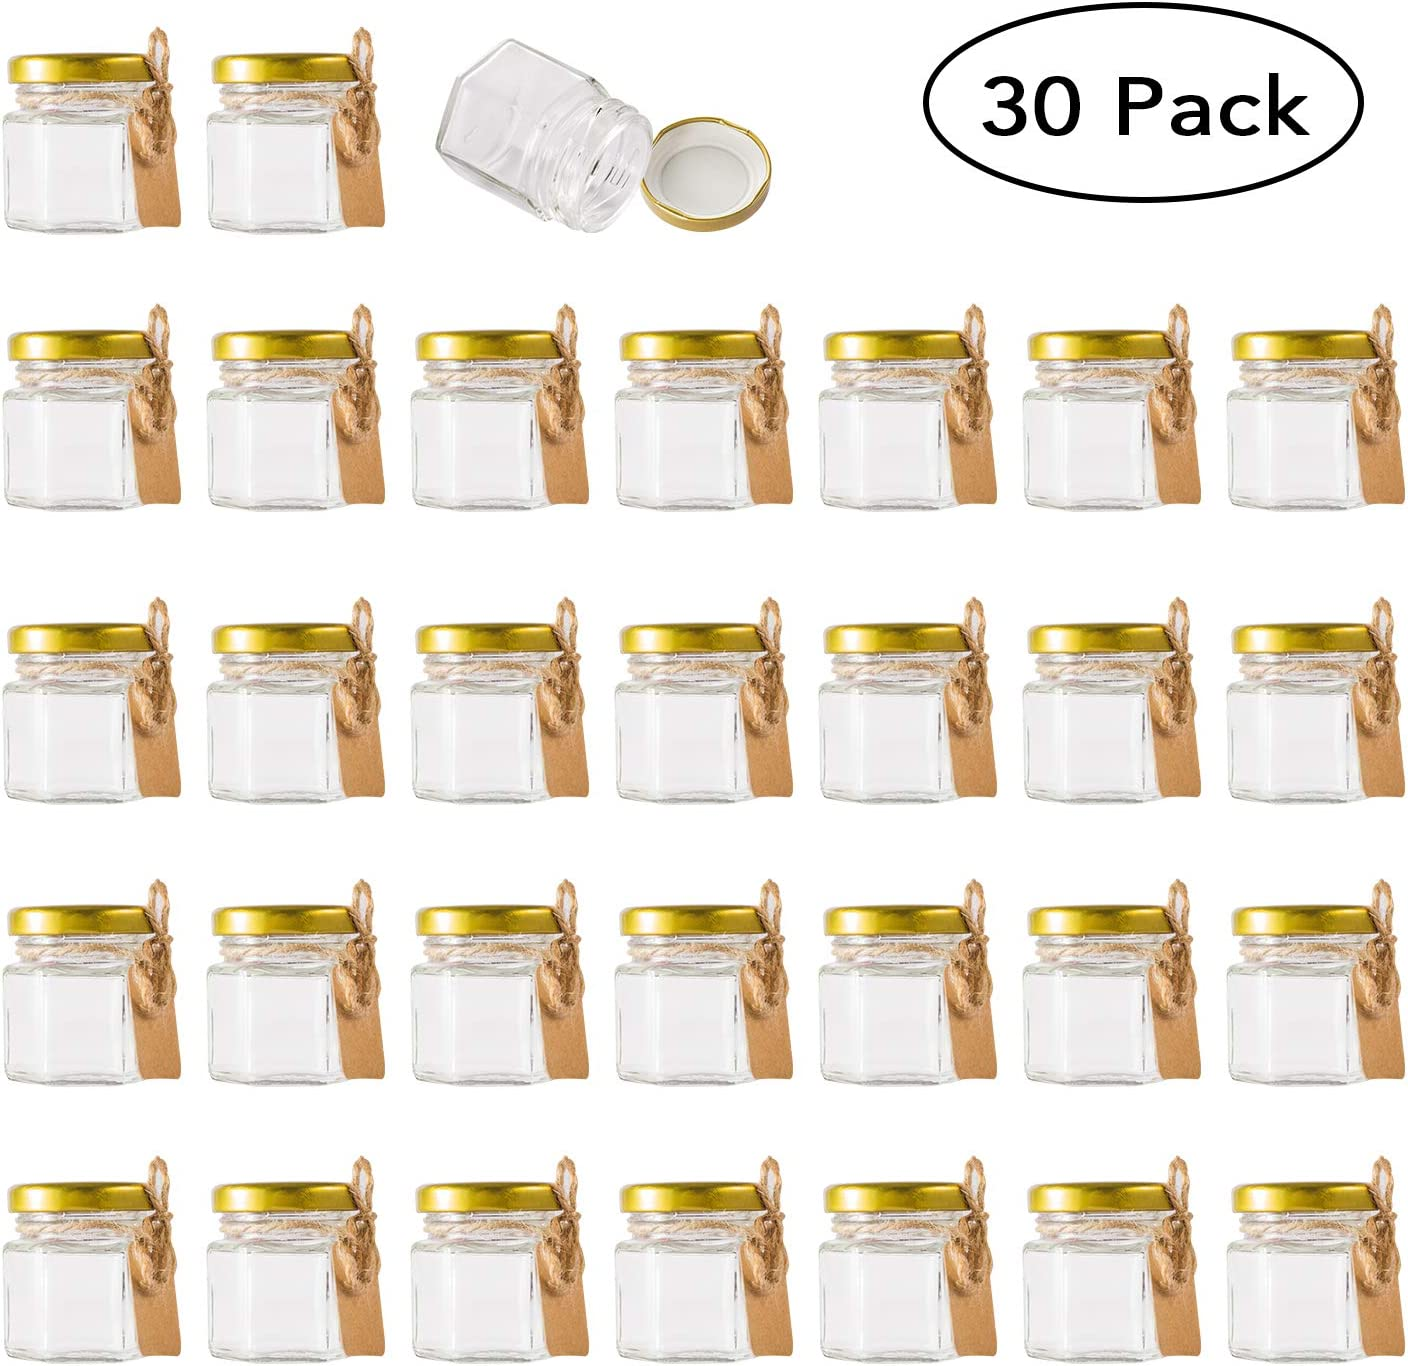 Encheng 1.5 oz Clear Hexagon Jars,Small Glass Jars With Lids(golden),Mason Jars For Herbs,Foods,Jams,Liquid,Mini Spice Jars For Storage 30 Pack …